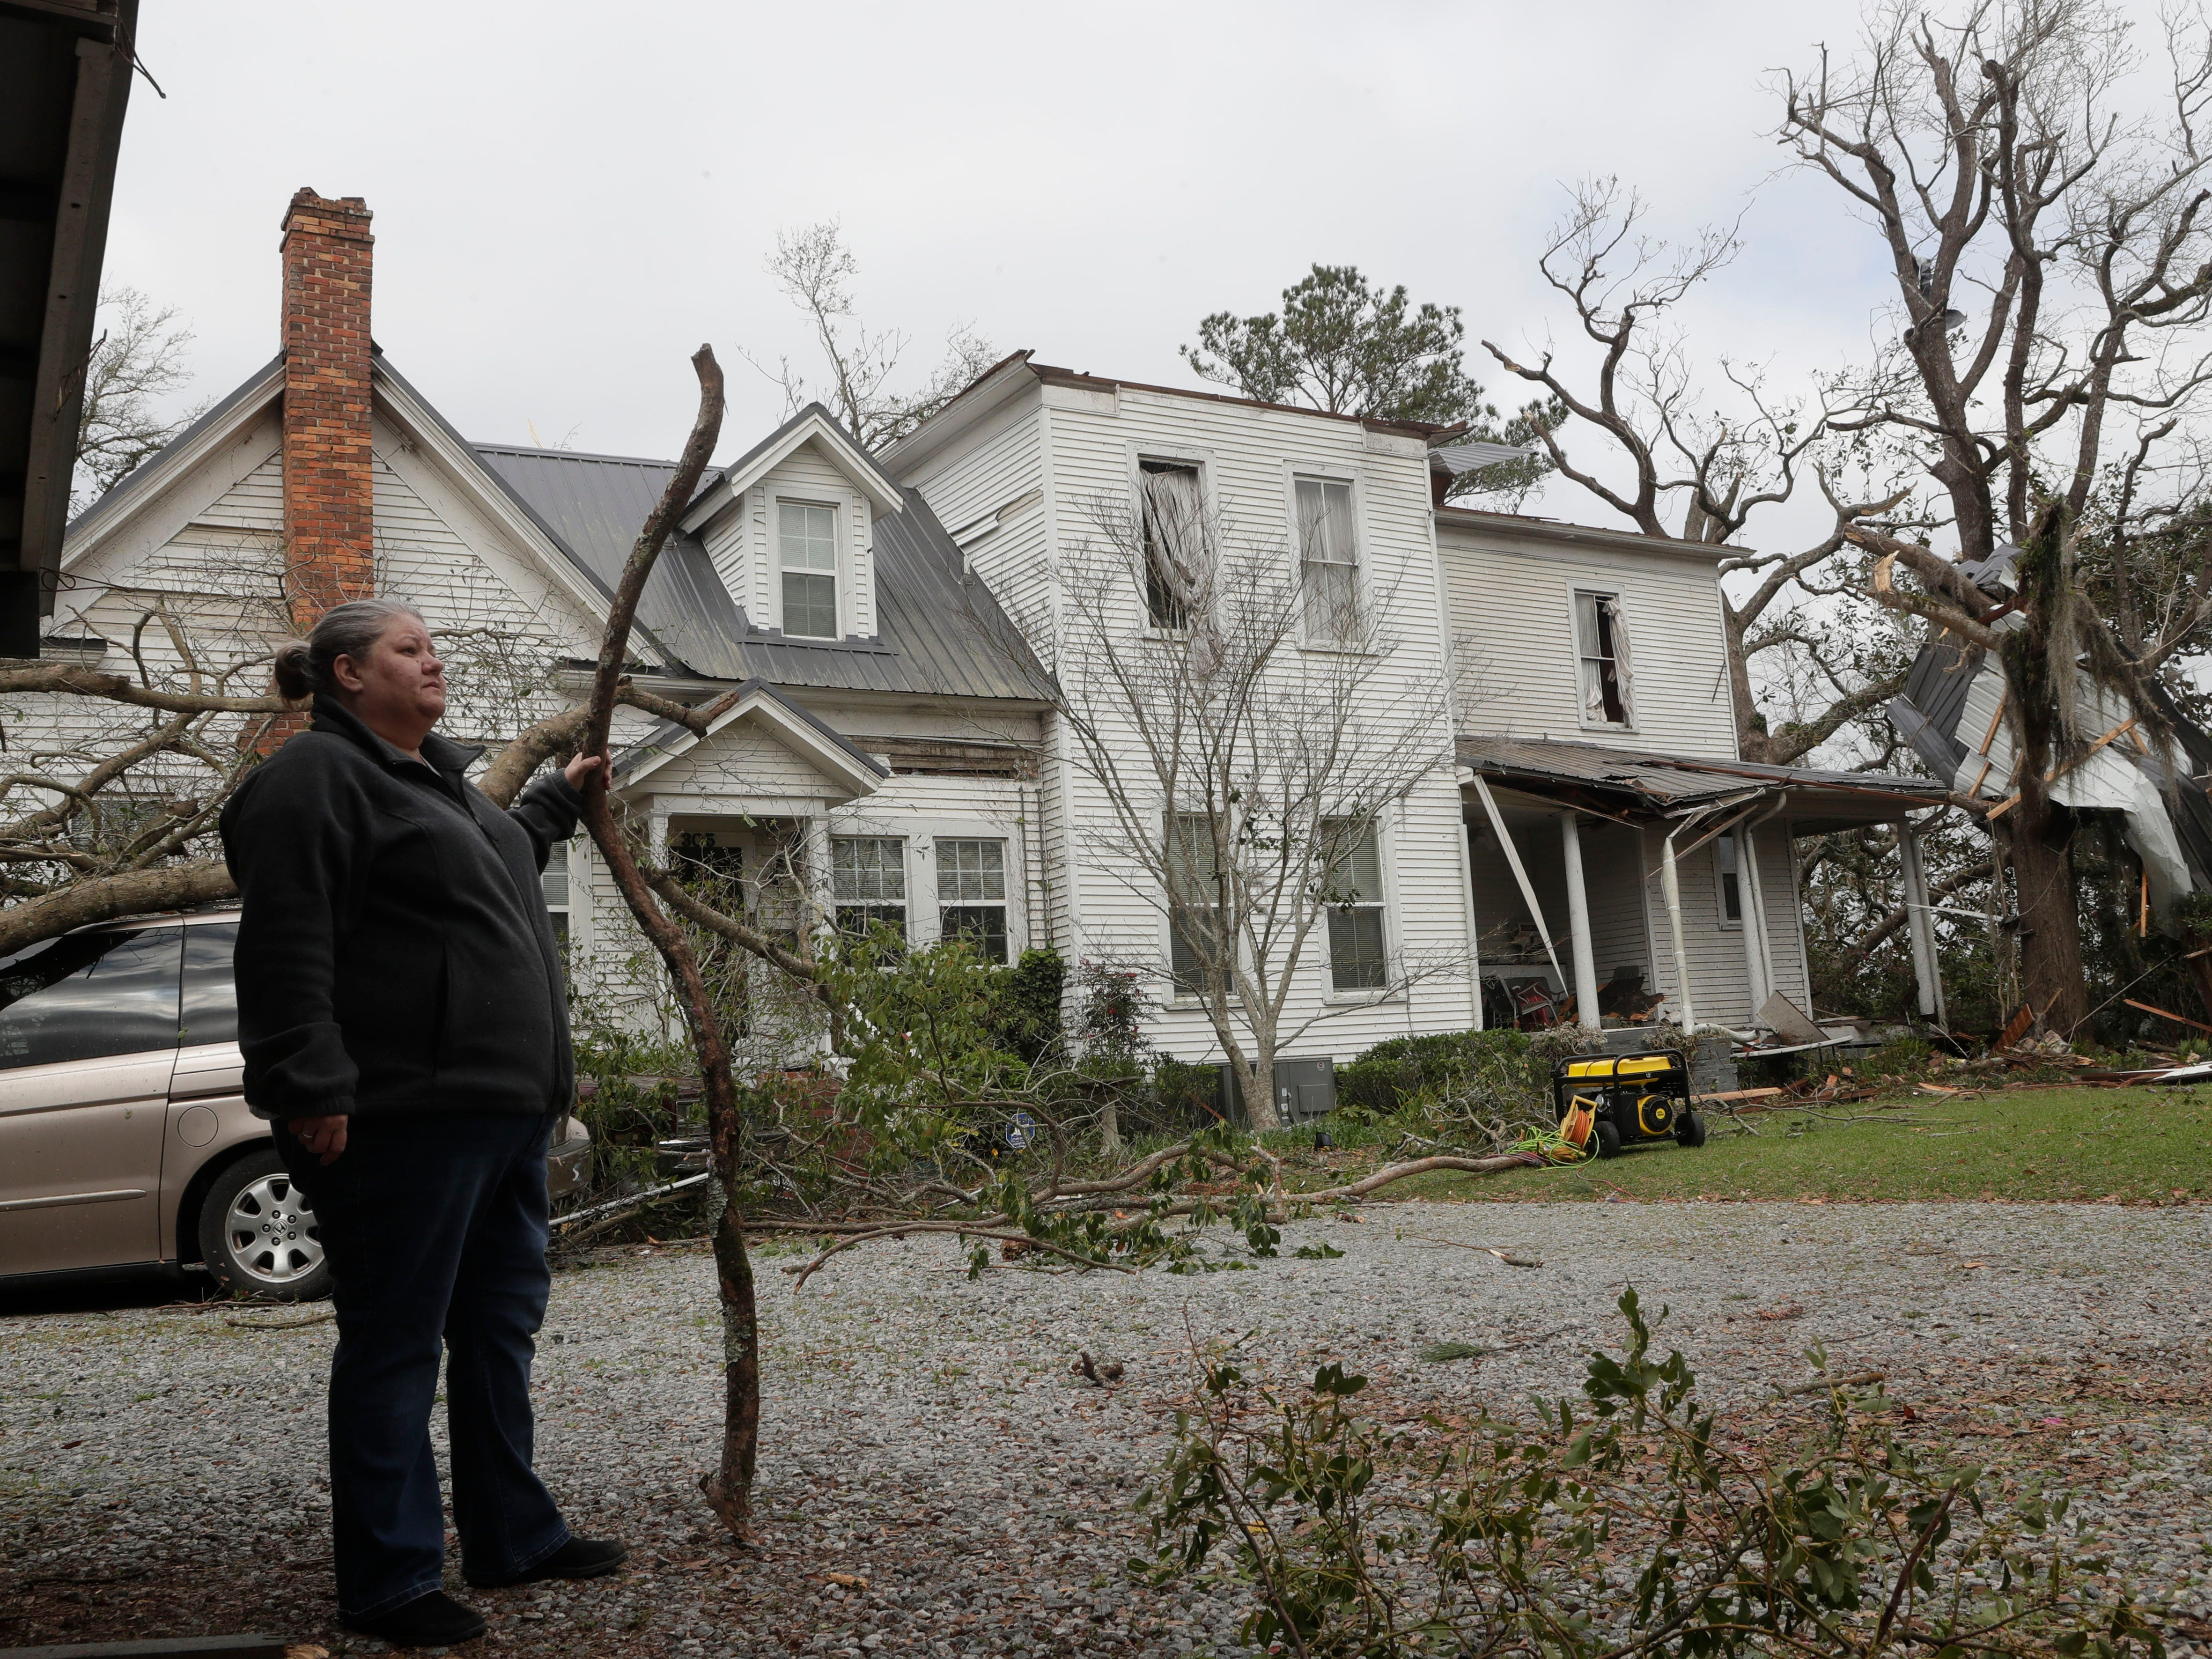 Tammy Esther, daughter of Ellen White, stands outside her mother's home and surveys tornado damage from the previous night on March 4, 2019.